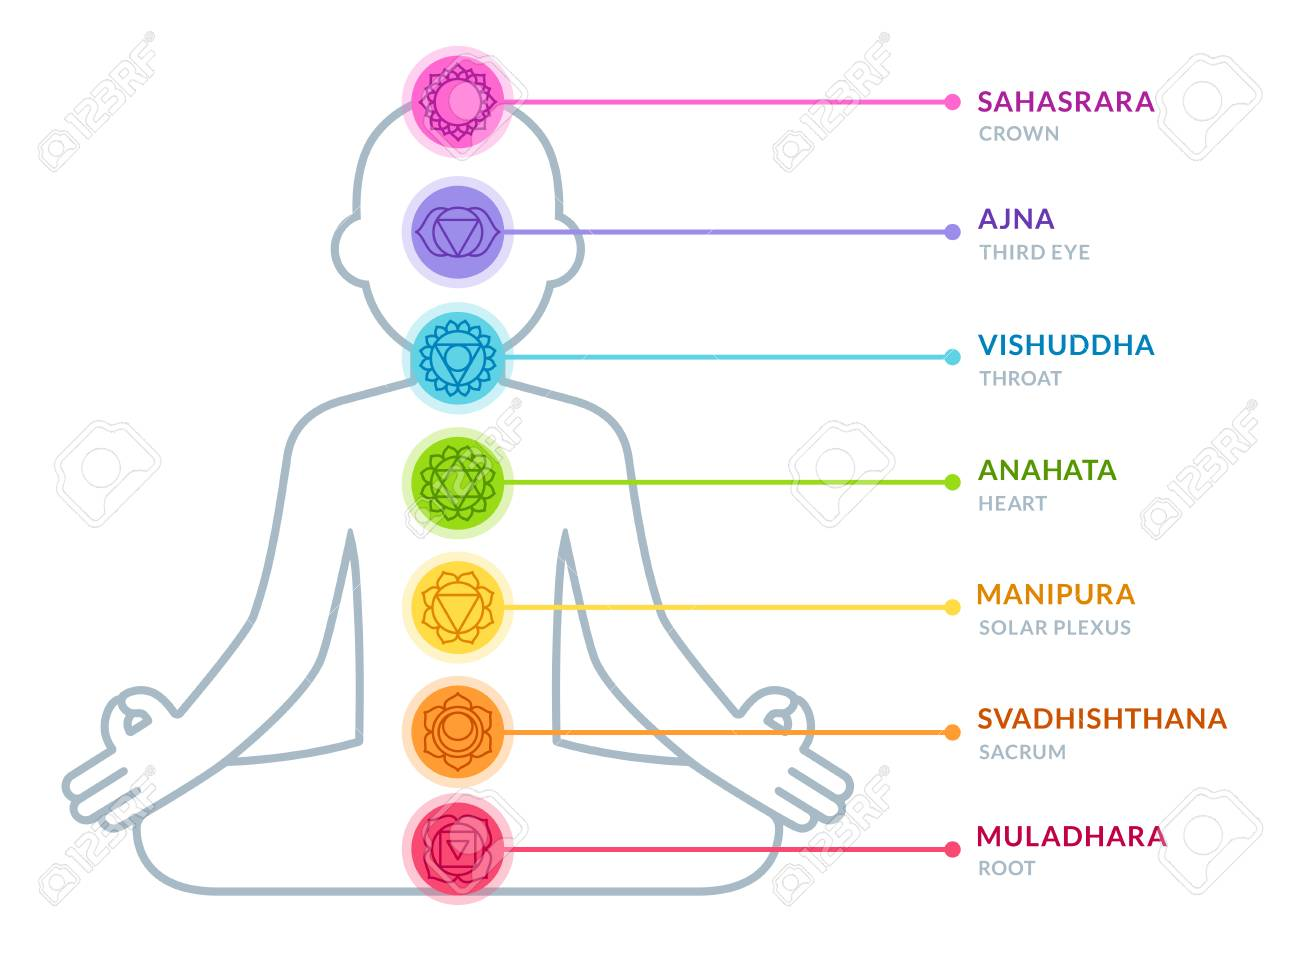 photograph about Chakras Chart Printable titled Chakras infographic chart within just uncomplicated and ground breaking flat layout. Guy..